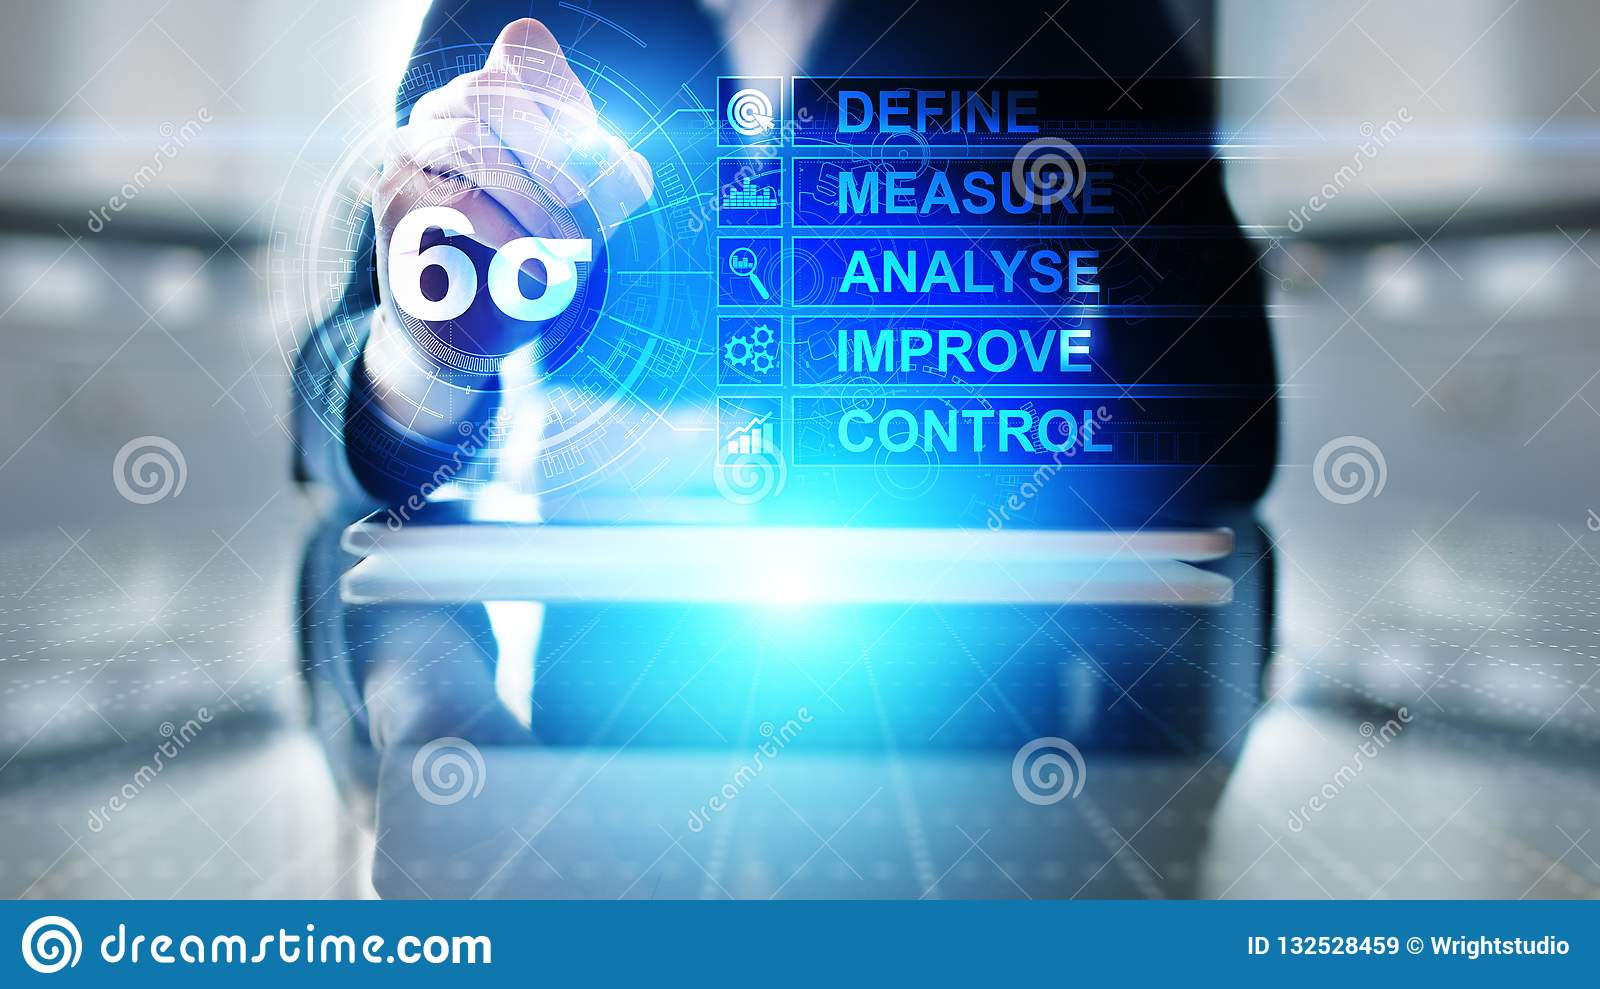 Six Sigma, Lean manufacturing, quality control and industrial process improving concept.